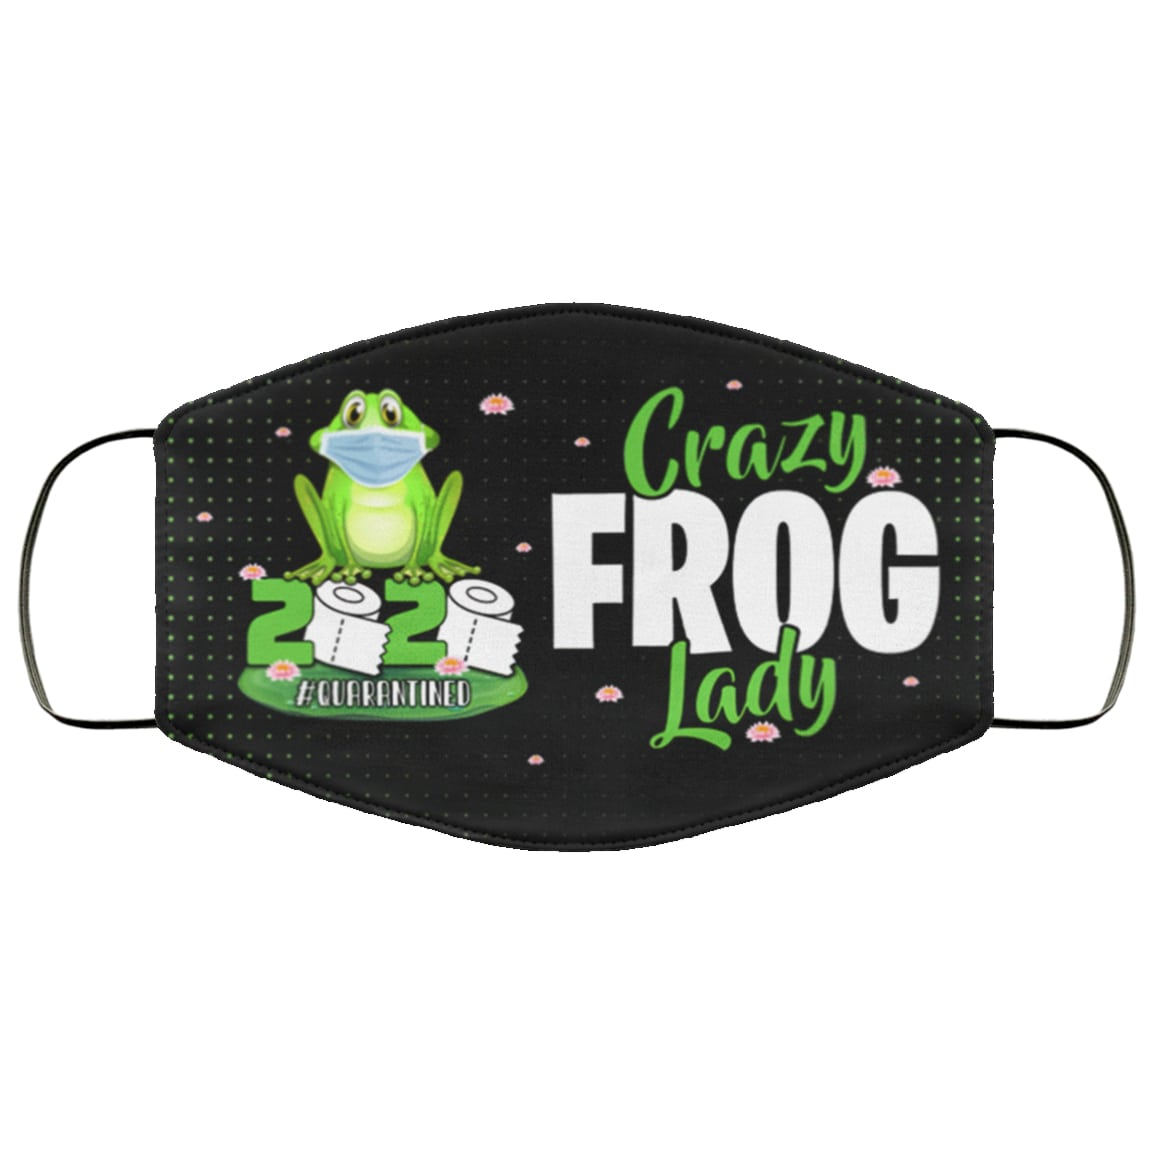 Crazy frog lady 2020 quarantined anti pollution face mask 4